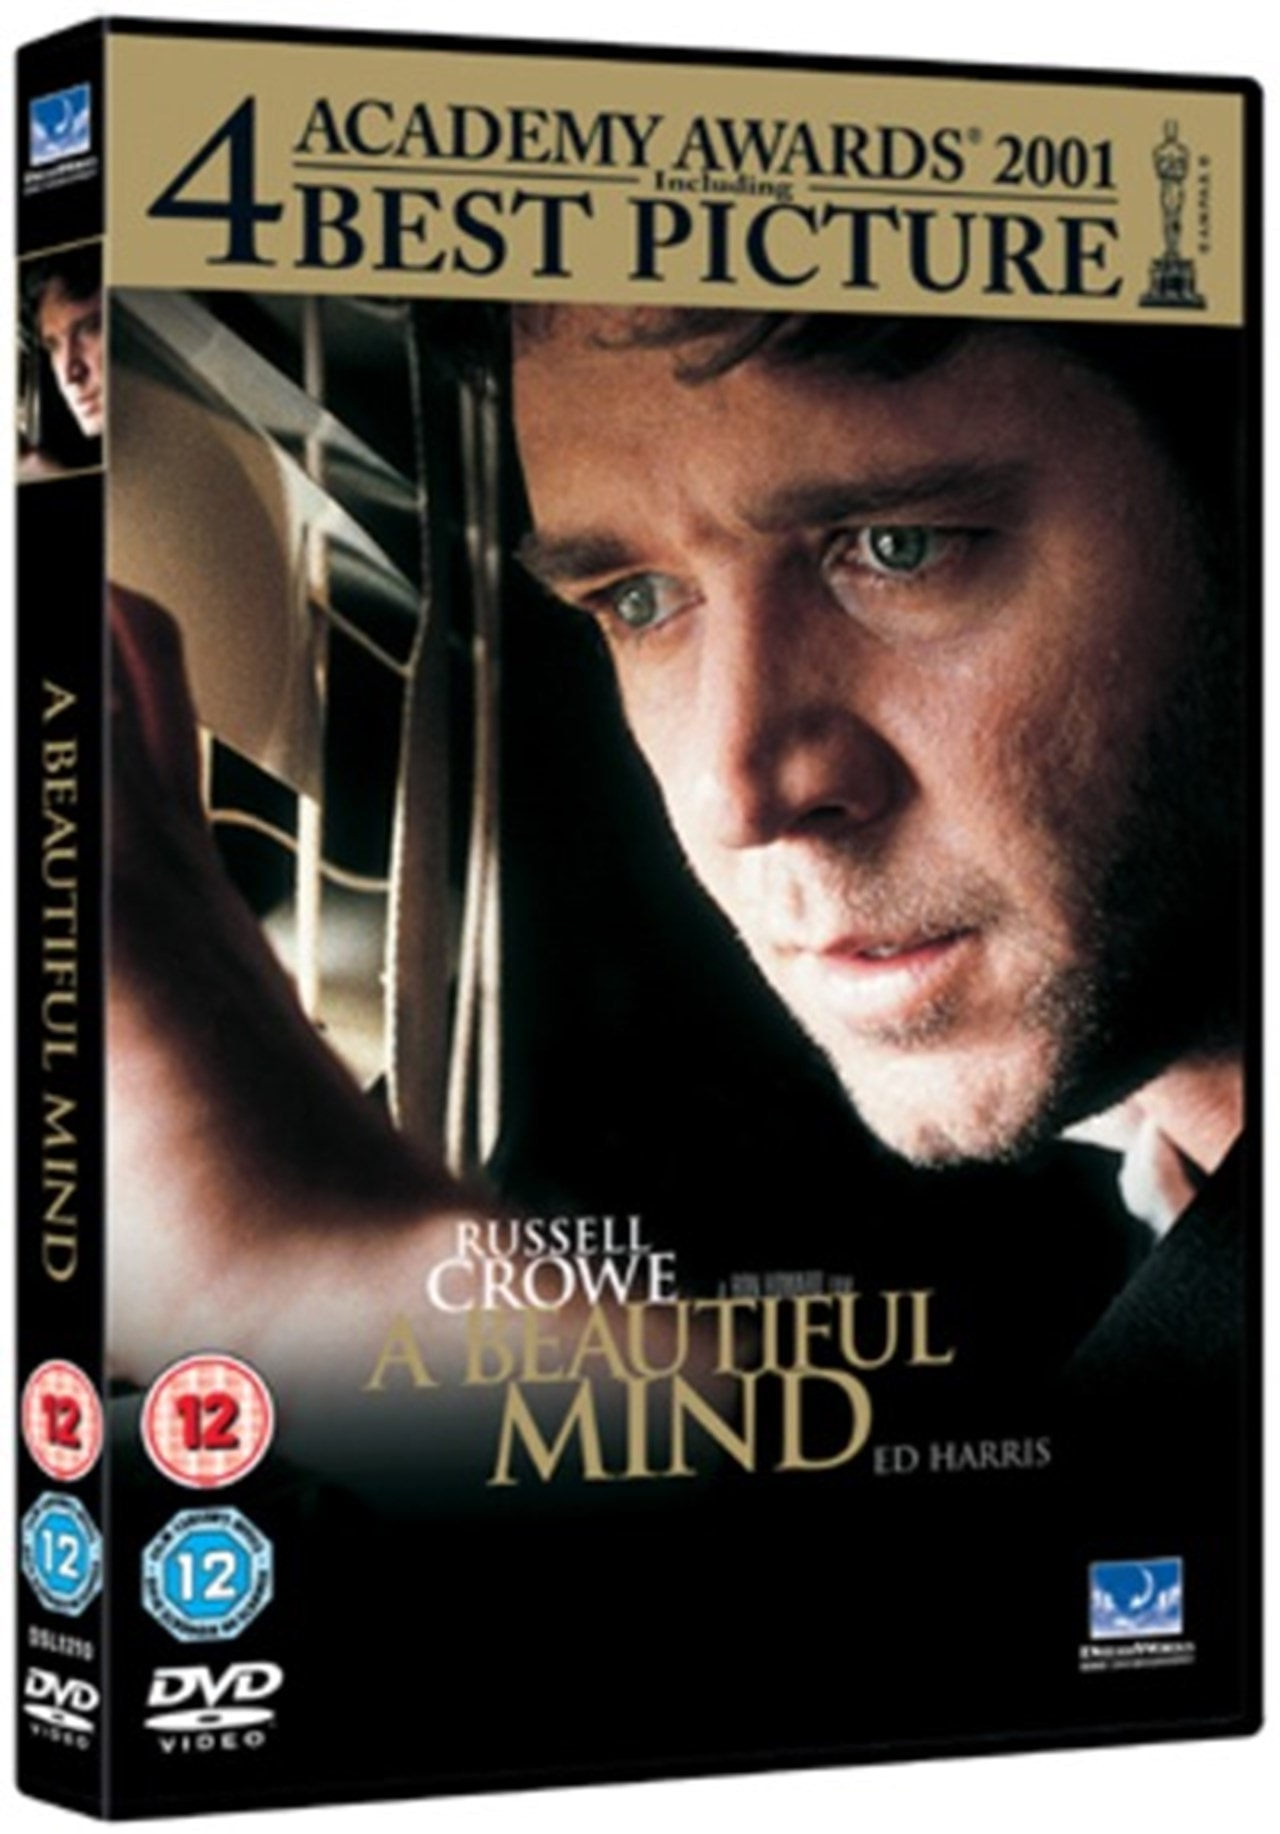 A Beautiful Mind - 1